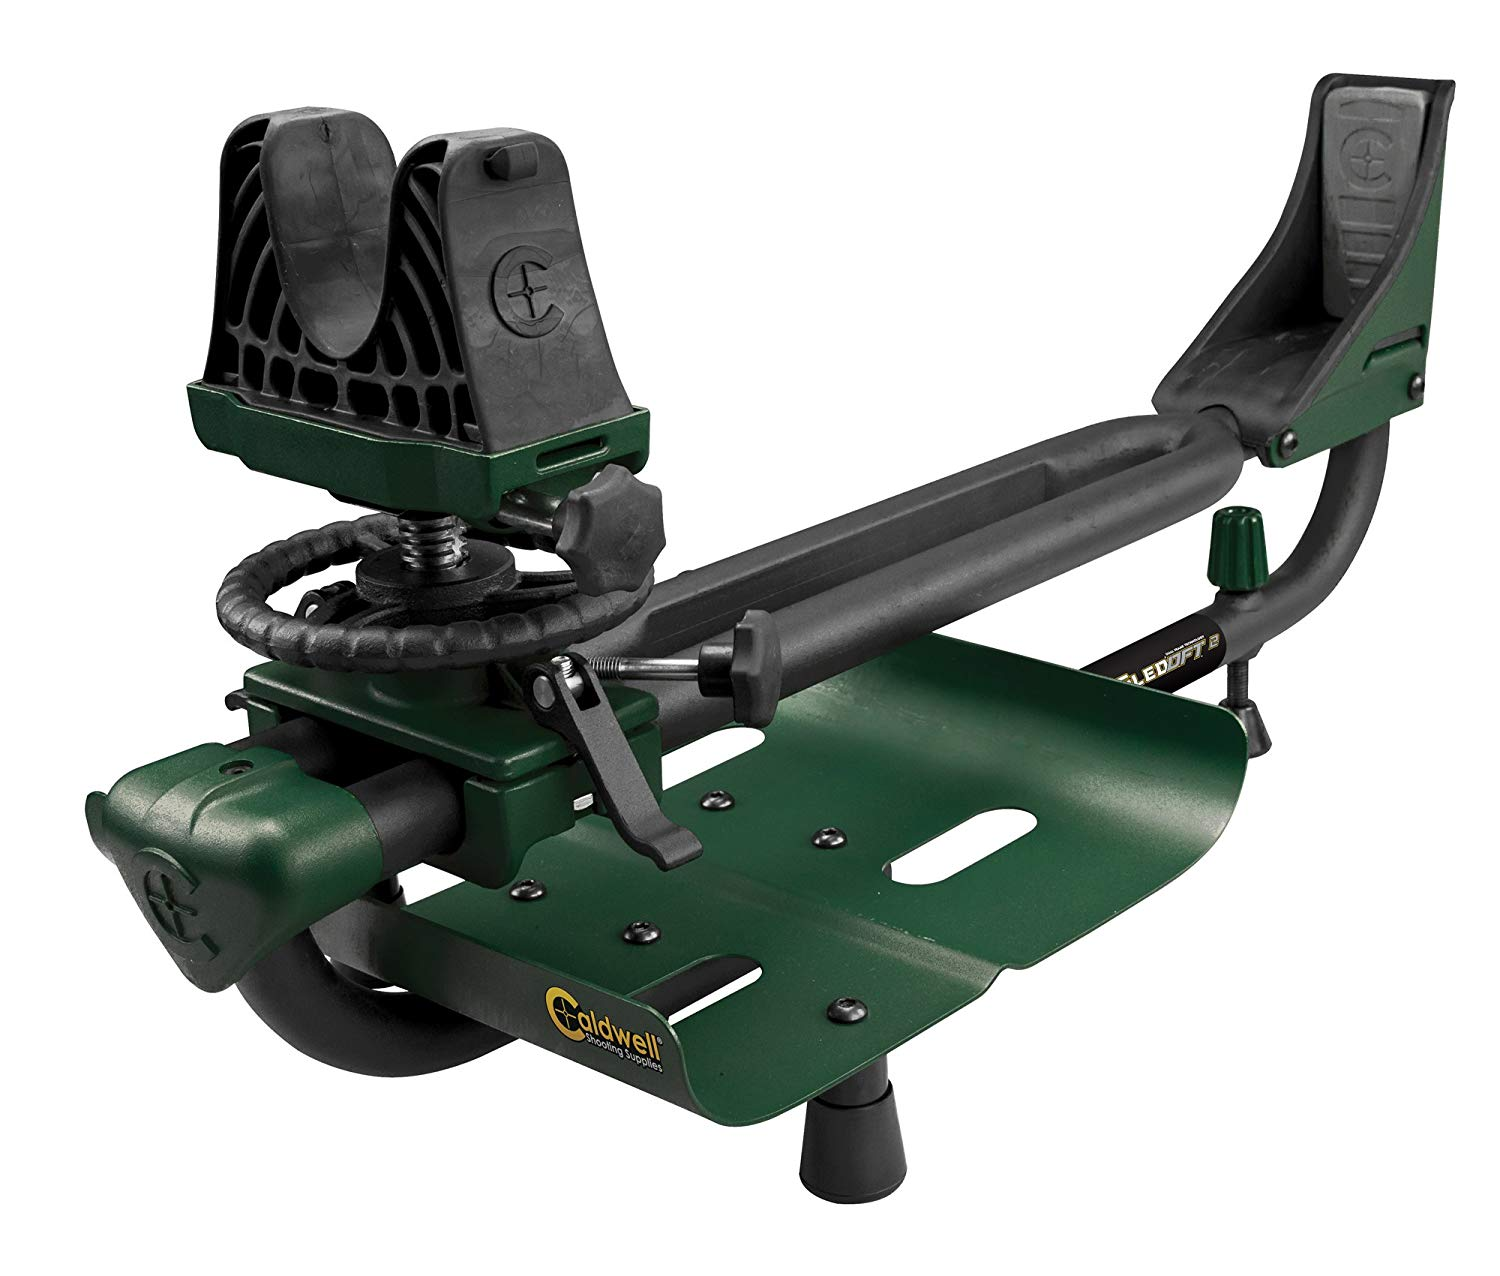 Caldwell Lead Sled DFT 2 Adjustable Ambidextrous Recoil